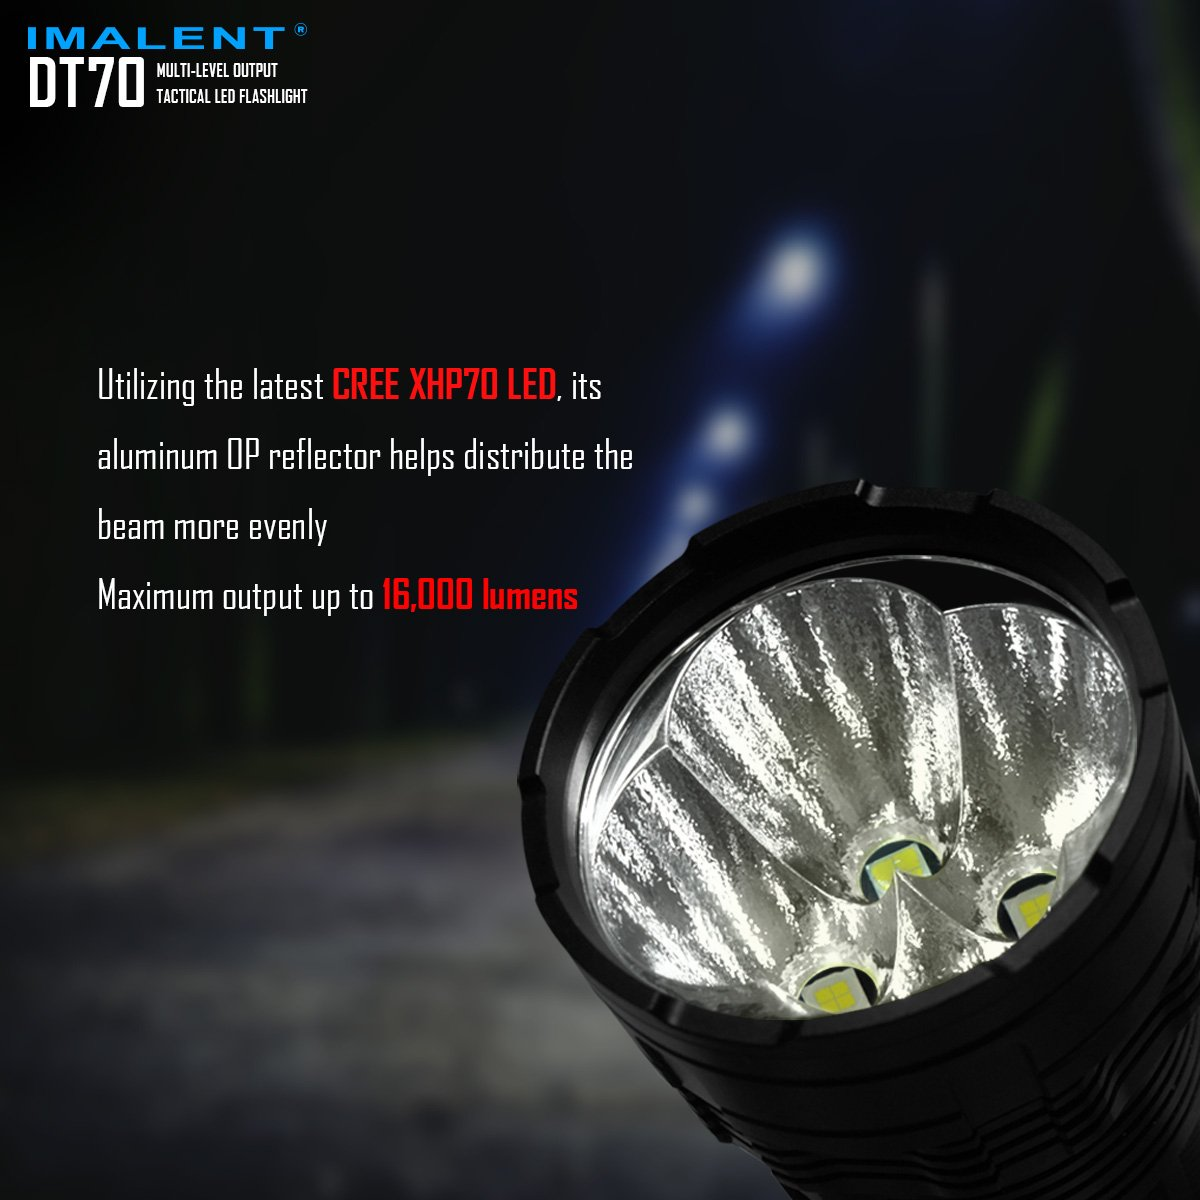 IMALENT DT70 Flashlights High Lumens Rechargeable 16000 Lumens 4 Pcs CREE XHP70 LEDs, Portable Handheld Torch by IMALENT (Image #6)